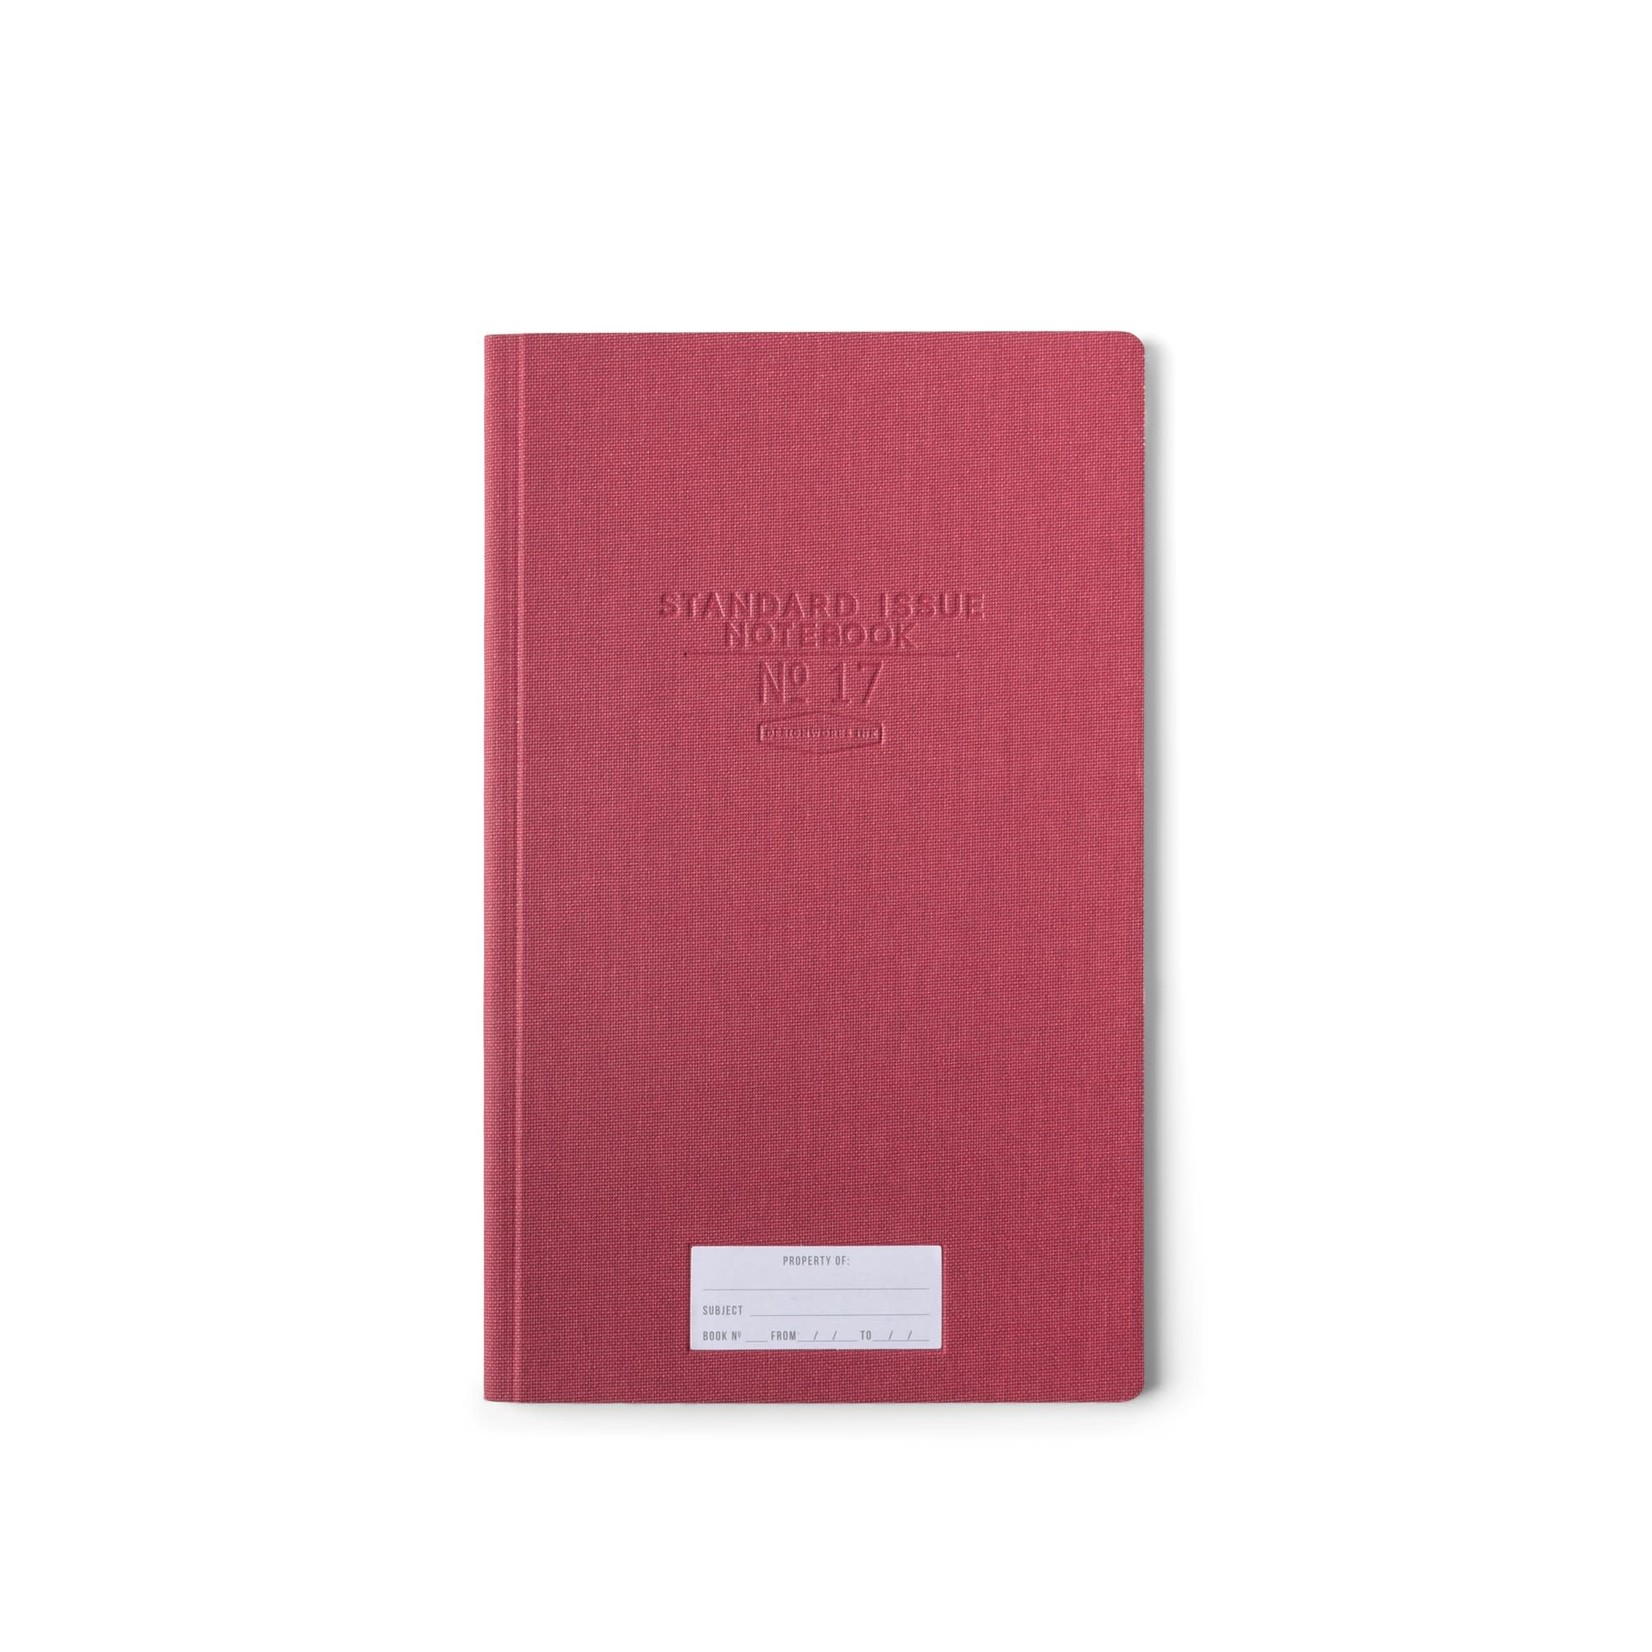 Design Works Standard Issue Tall Notebook No.17